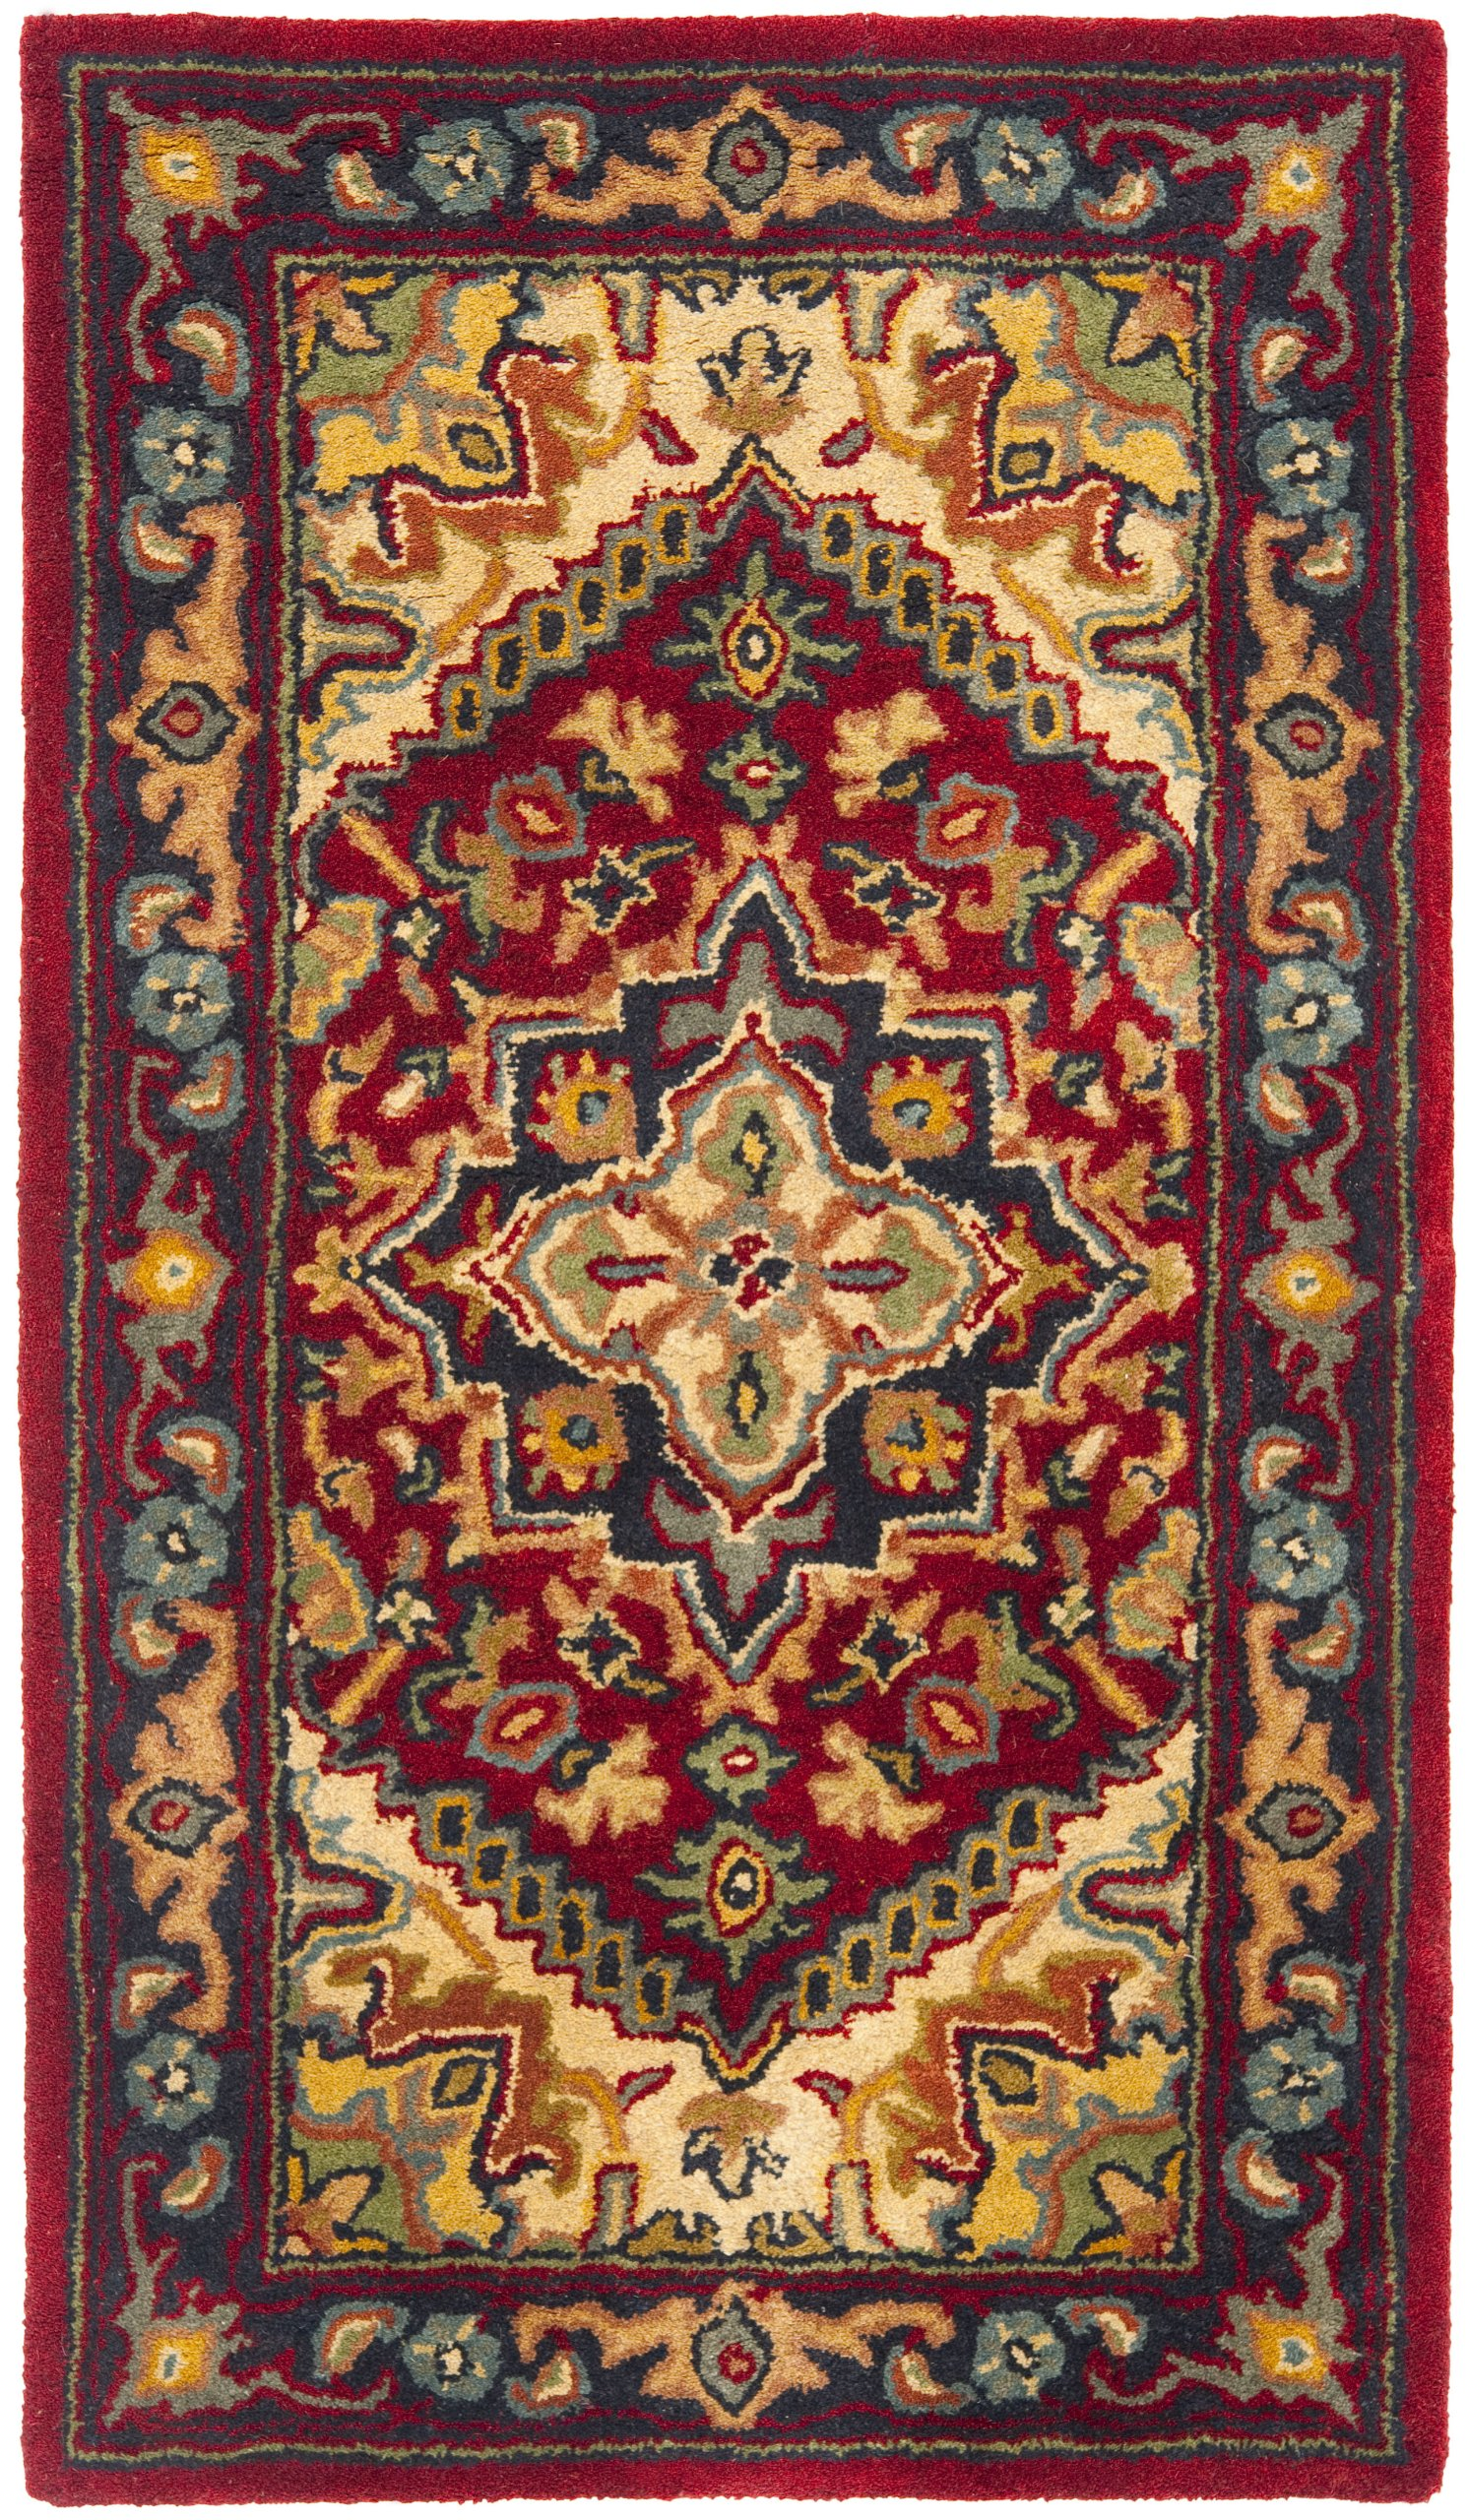 Safavieh Heritage Collection HG625A Handcrafted Traditional Oriental Heriz Medallion Red Wool Area Rug (2'3'' x 4')